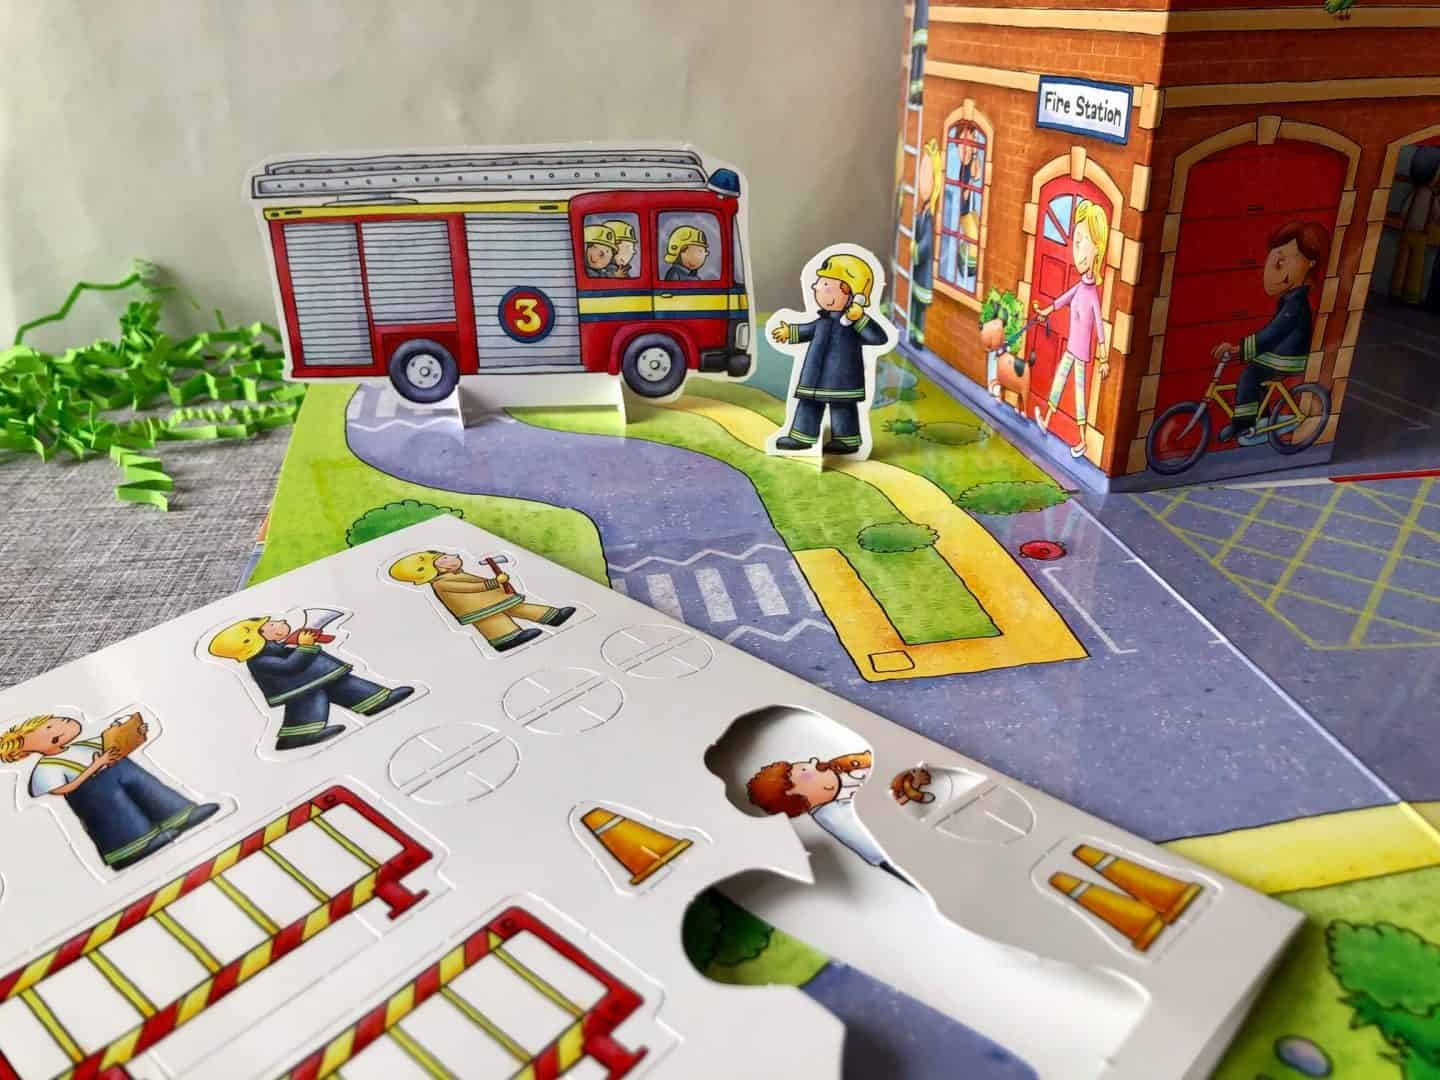 fire engine with cut out figures